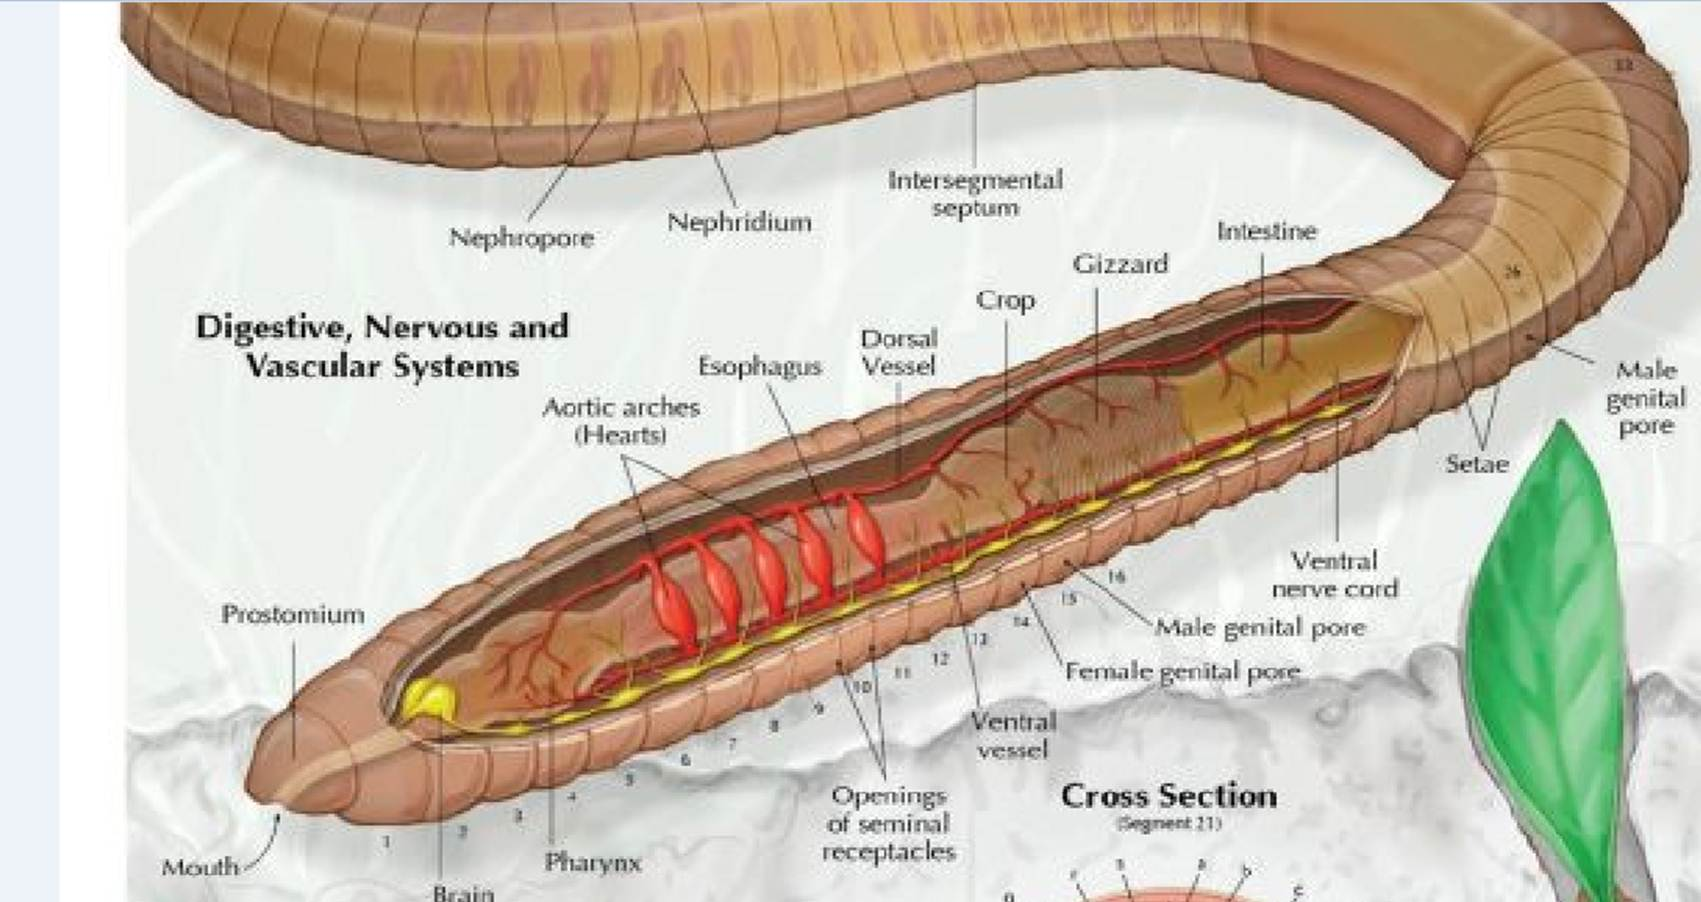 Colorful Earthworm Anatomy Diagram Component Human Anatomy Images